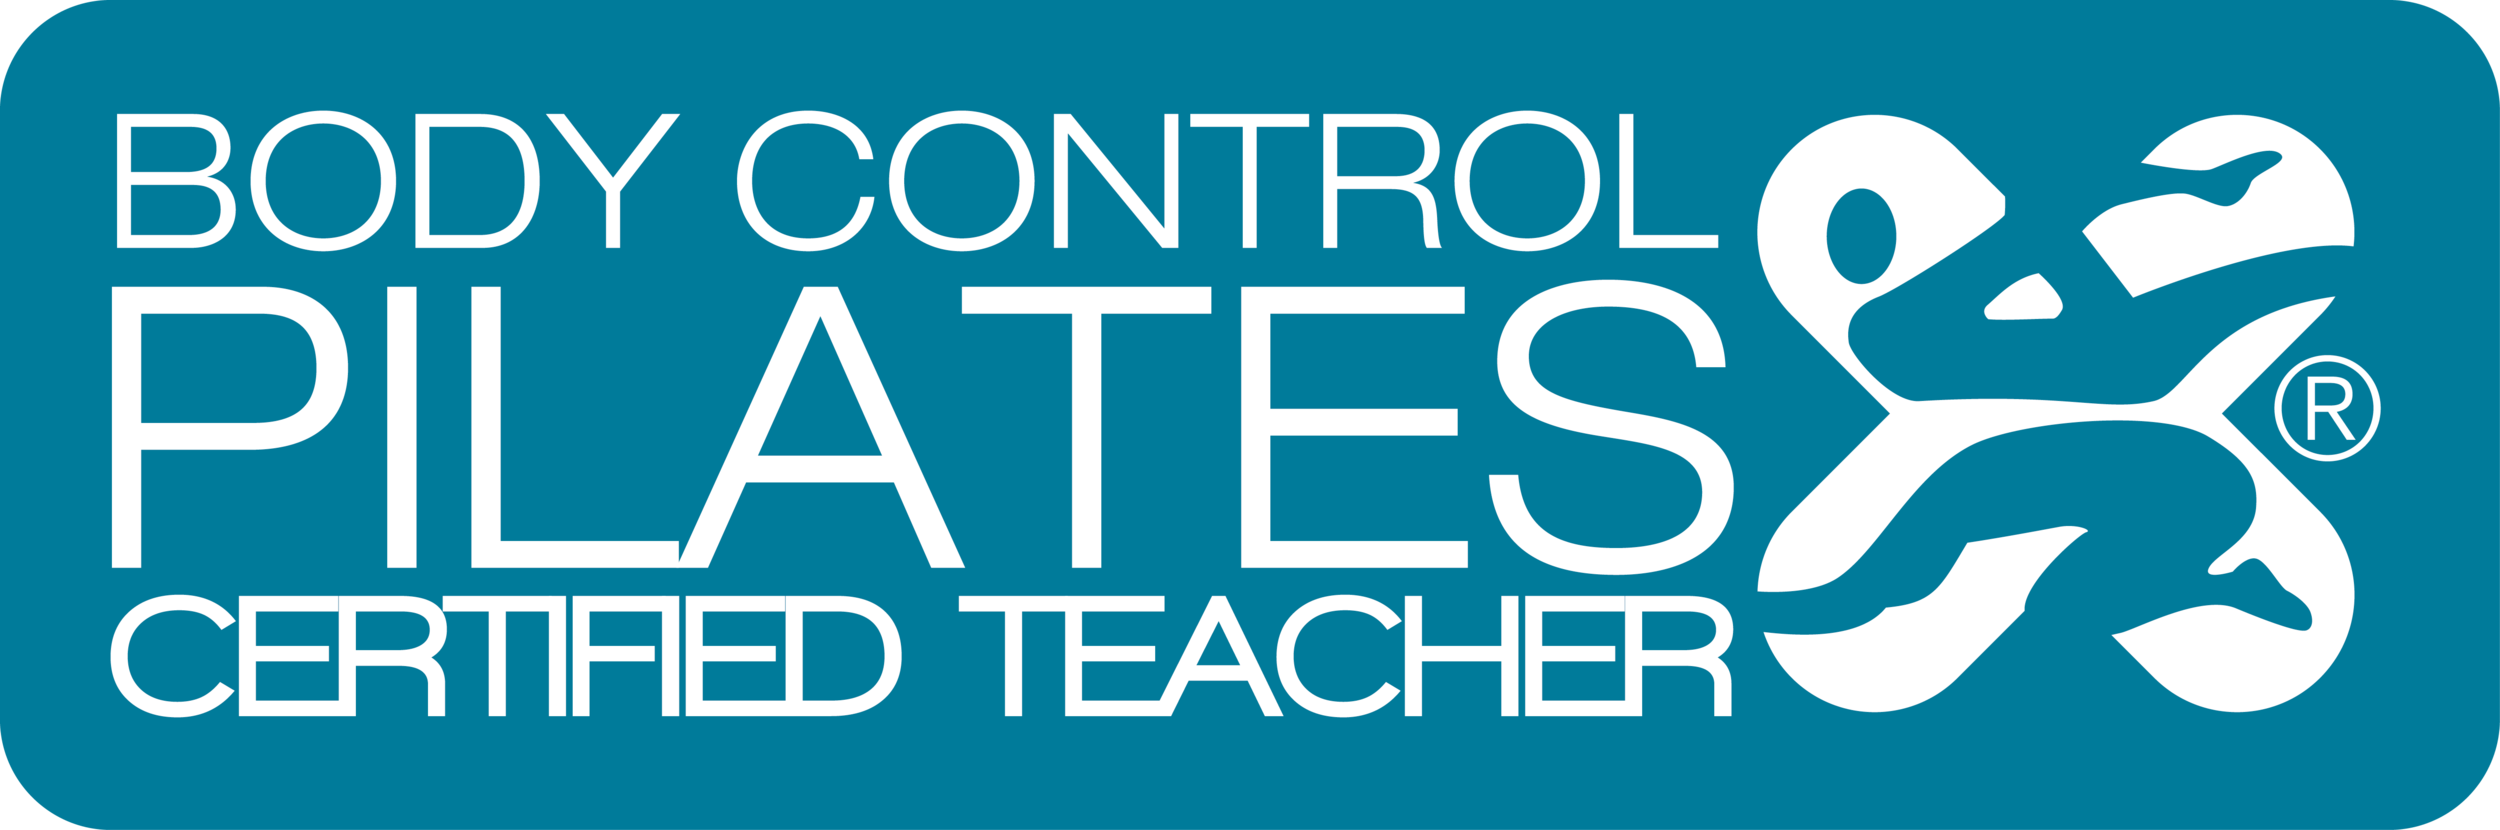 Body Control - Pilates Certified Teacher